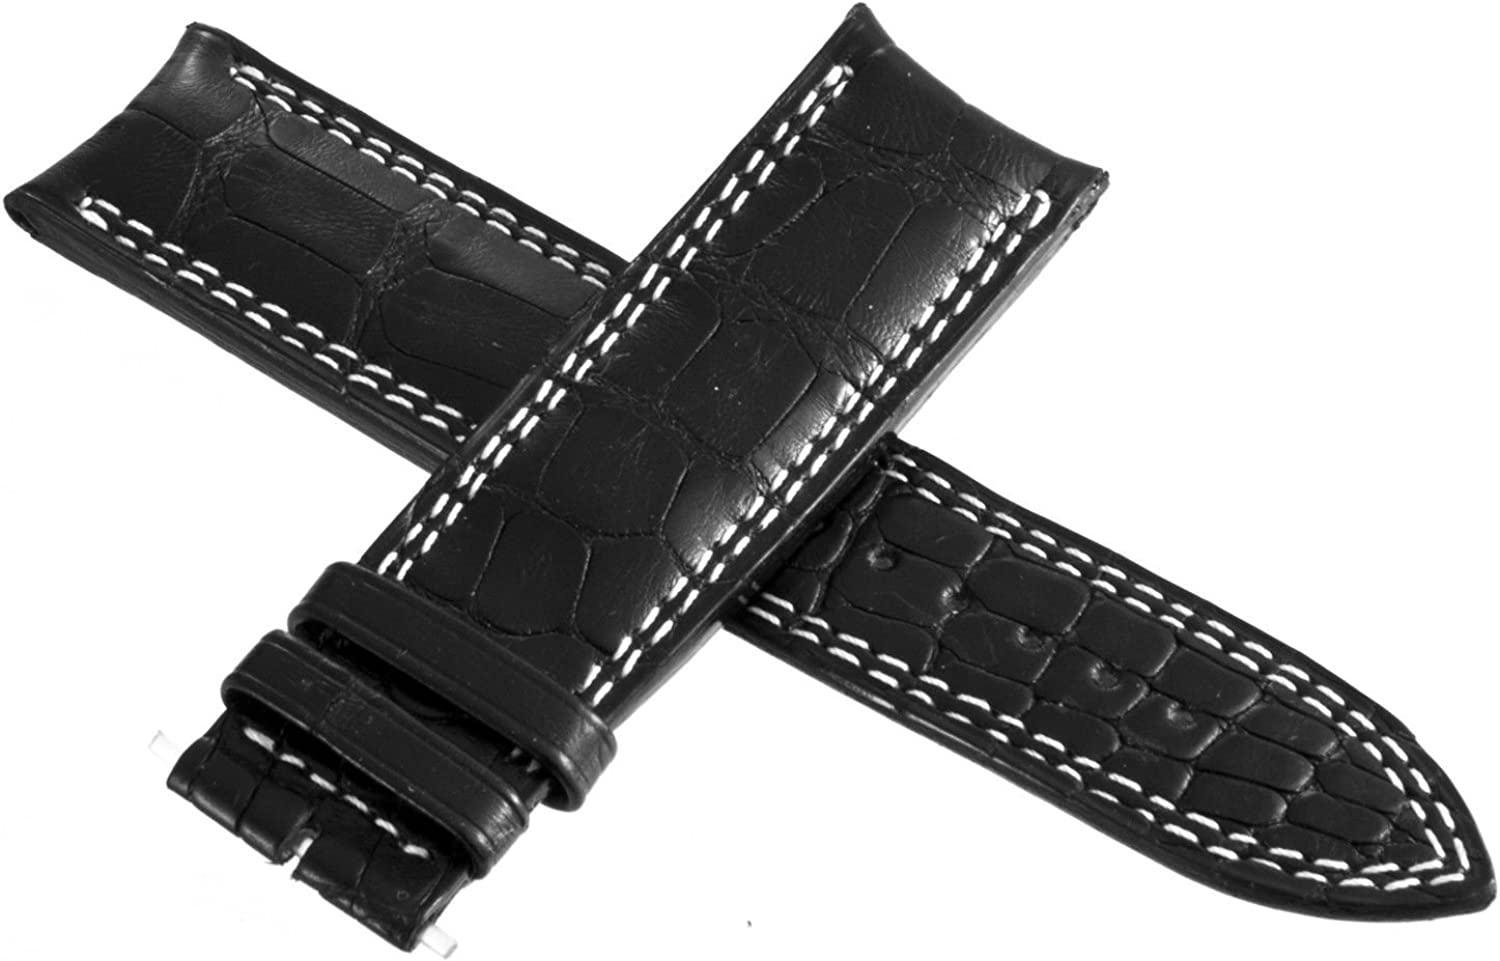 Jaeger LeCoultre Mens Black Gray Genuine Leather Watch Band 22mm x 20mm